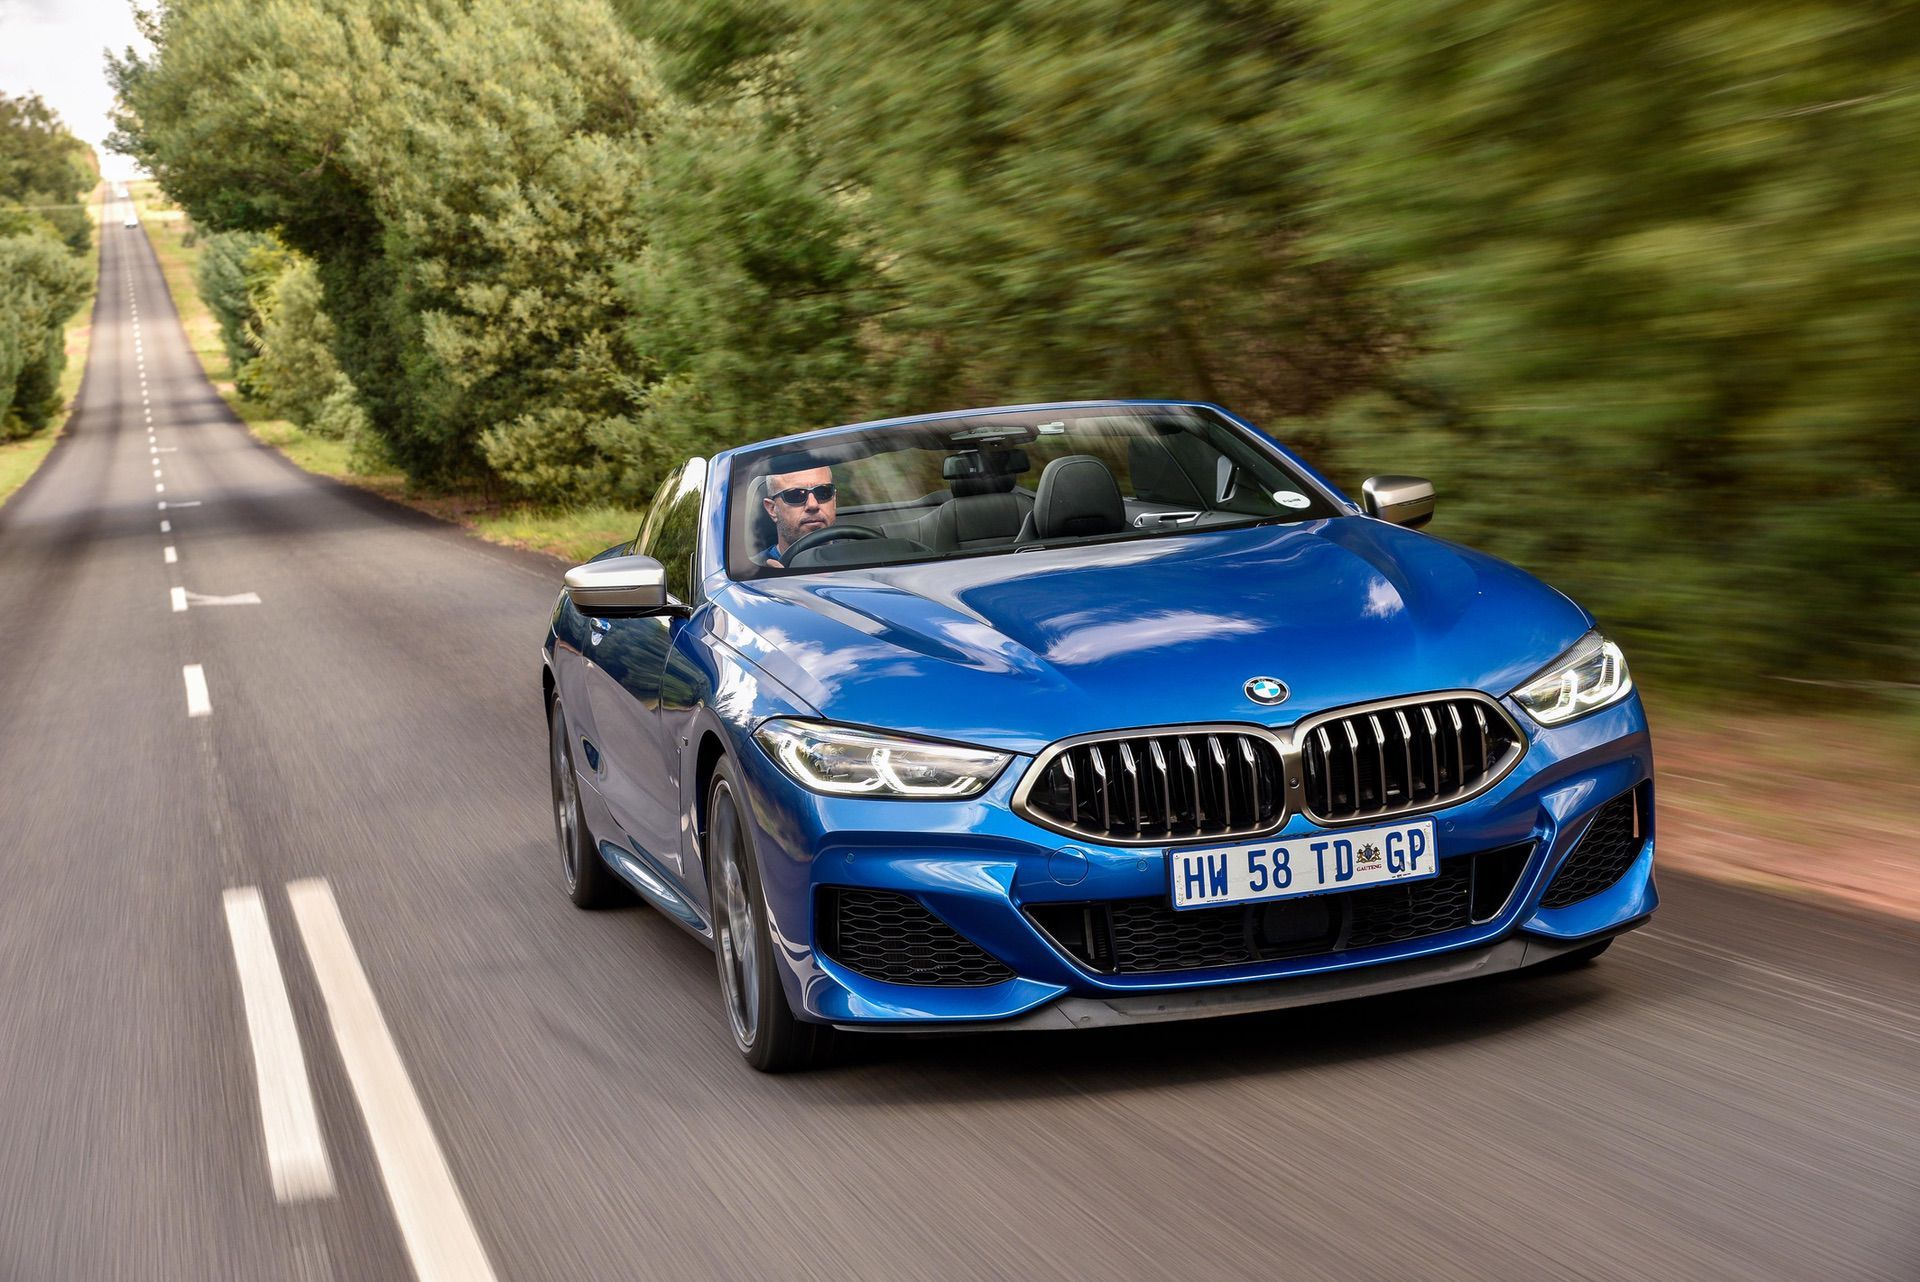 The New Bmw 8 Series Convertible Photoshoot From South Africa